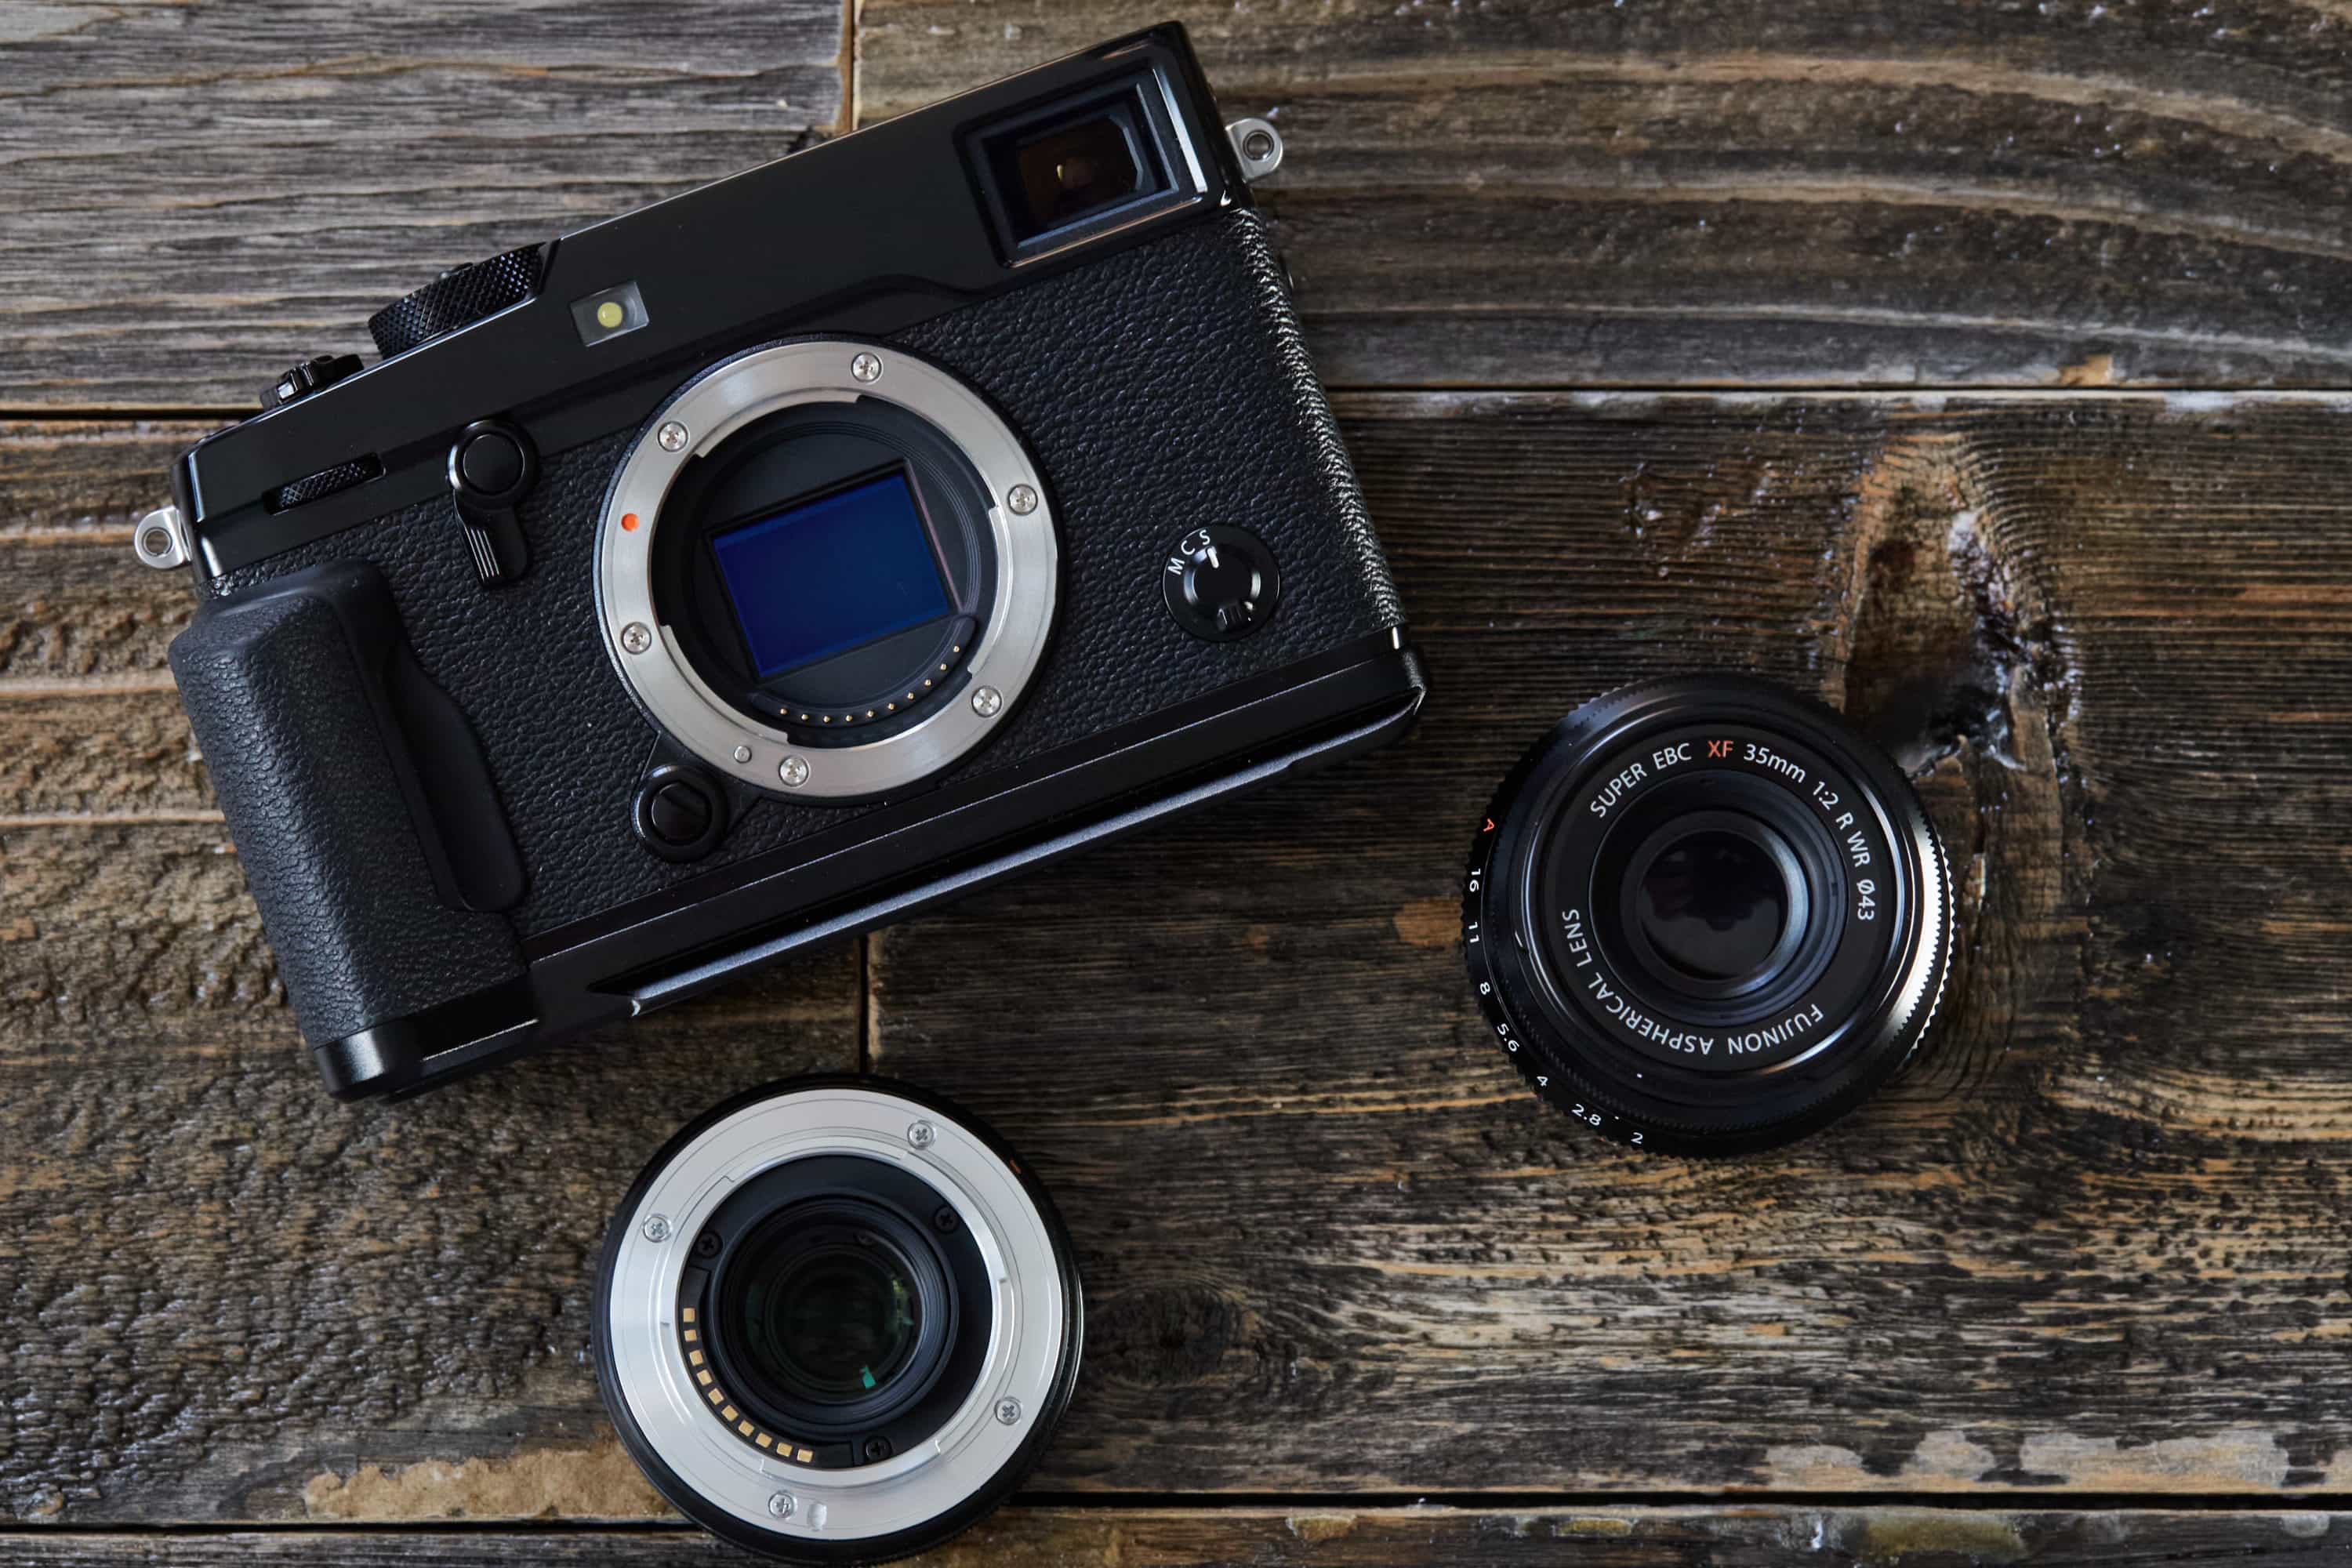 Fujifilm X-Pro2 camera and two Fuji lenses on wood background